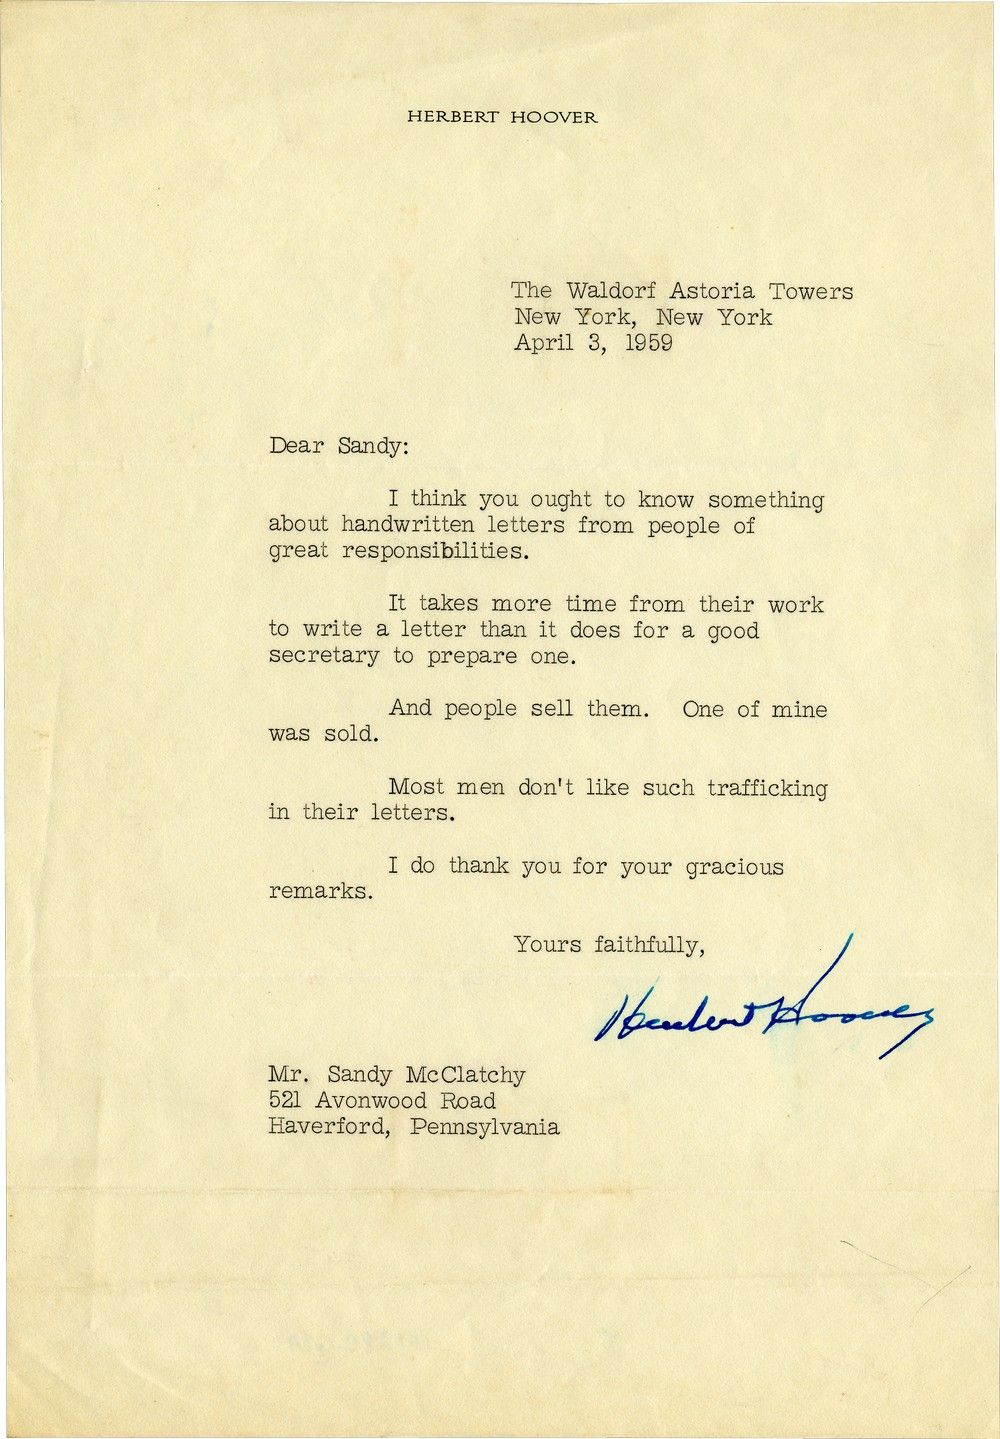 Important People, Hoover Explains, Don't Have Time to Write Longhand - Or Like Their Letters Being Sold